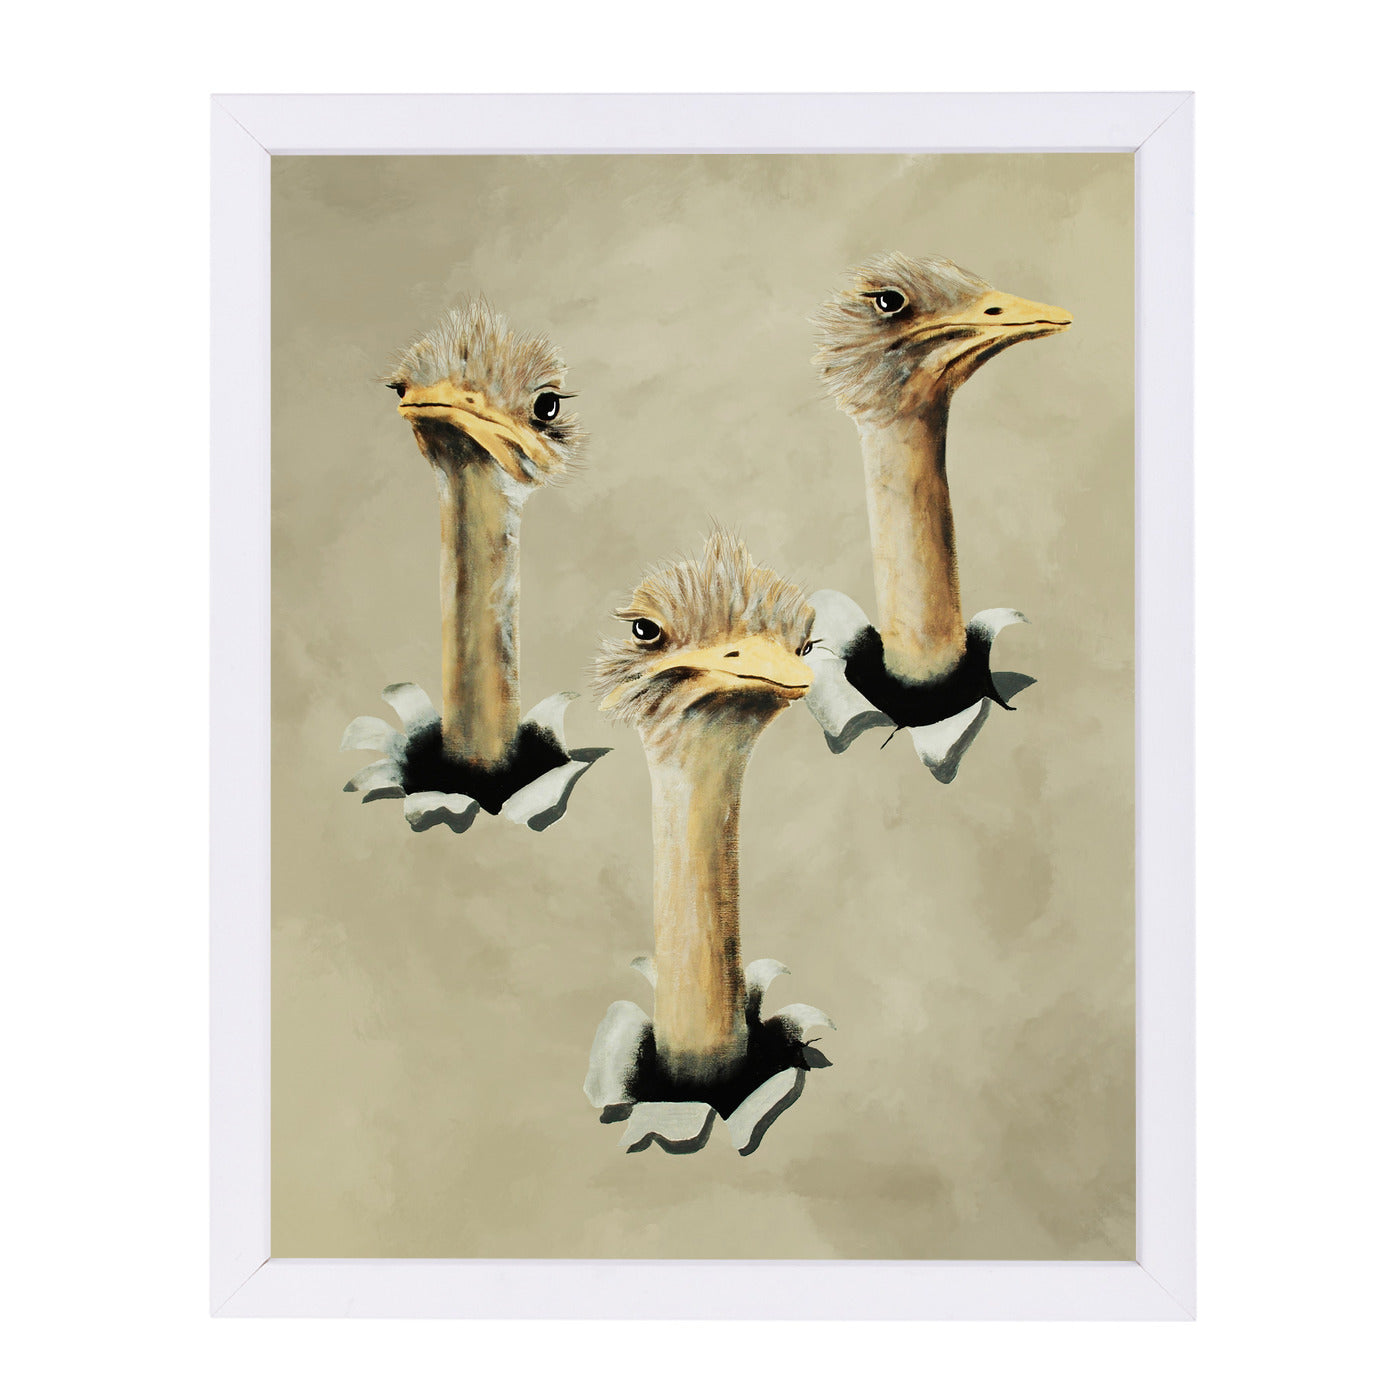 Ostriches Popping Out By Coco De Paris - White Framed Print - Wall Art - Americanflat